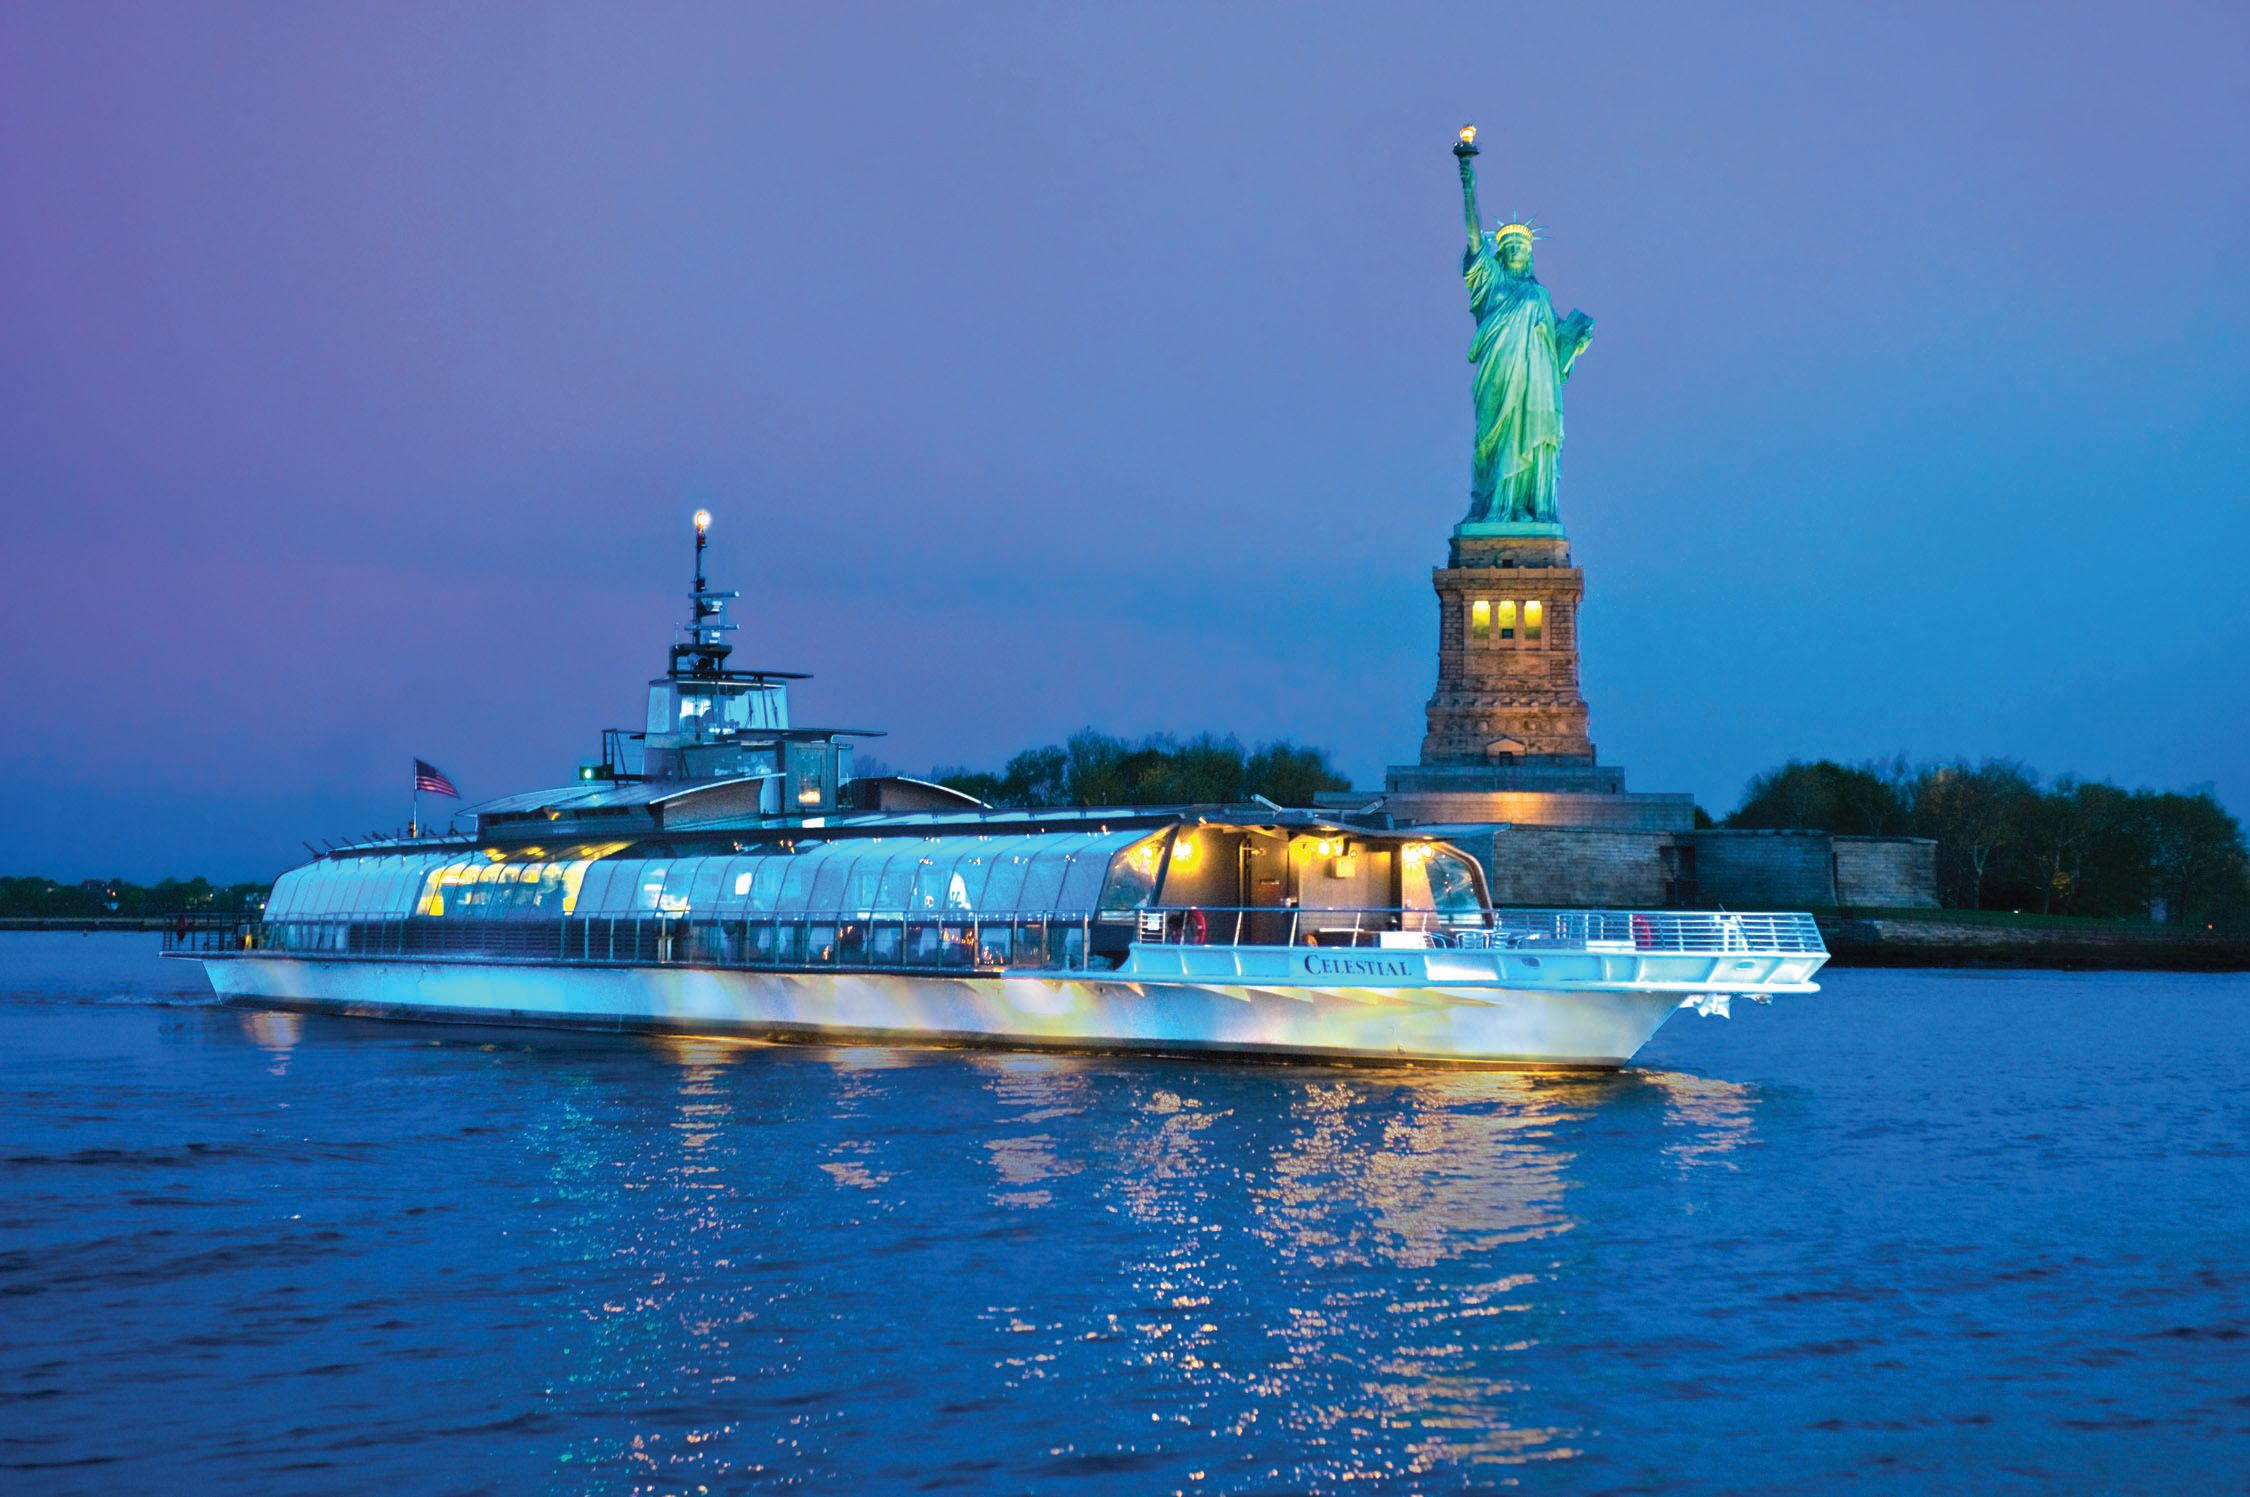 Statue of Liberty dinner cruise